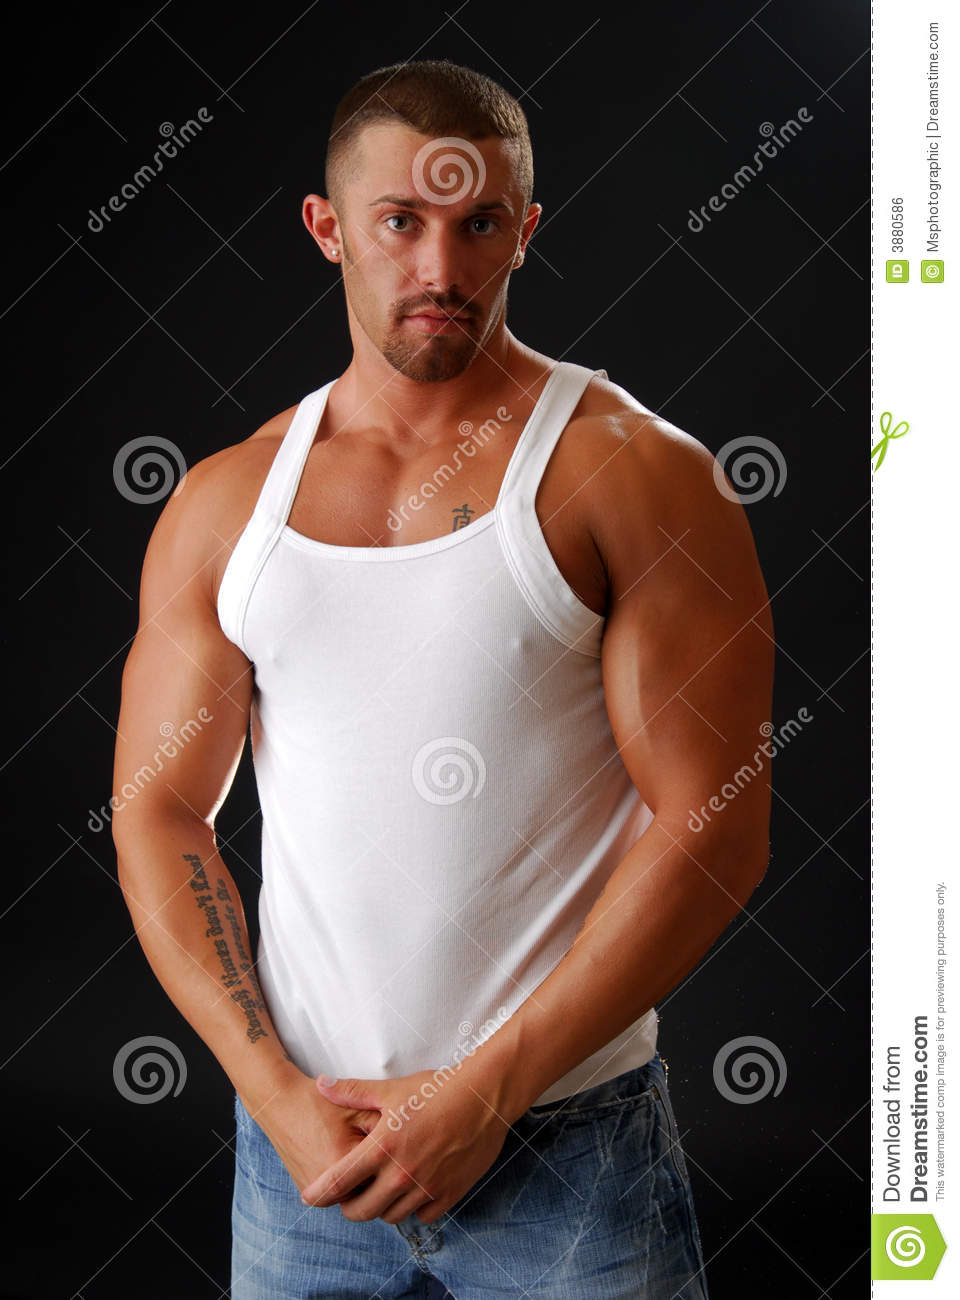 Muscle Man stock photo. Image of jeans, shirt, handsome